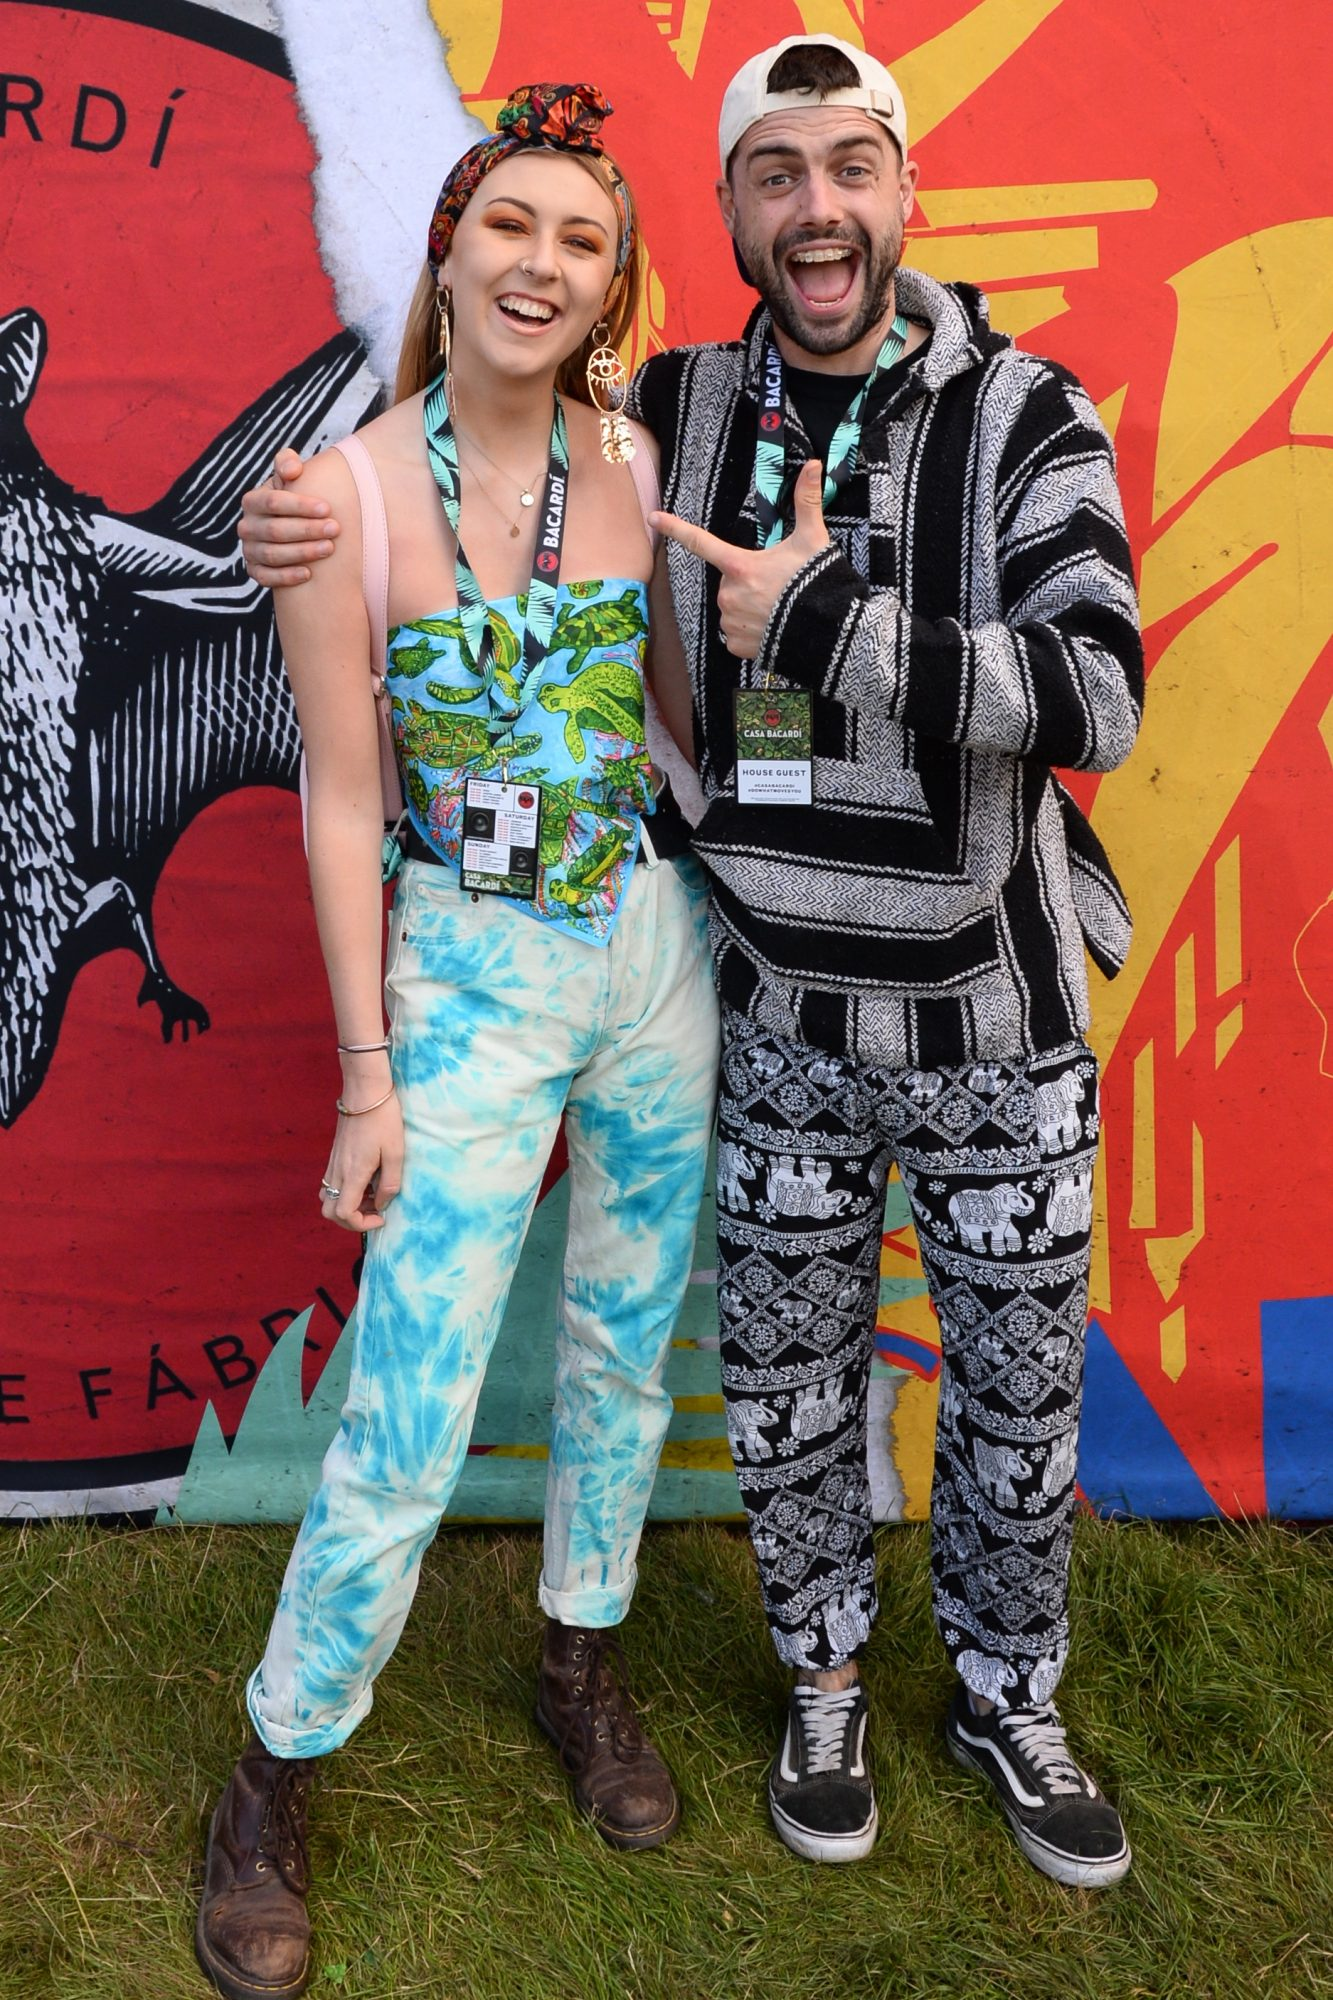 31st August 2019. Eadaoin Fitzmaurice and John Sharpson pictured at Casa Bacardi on day 2 of Electric Picnic. Photo: Justin Farrelly.